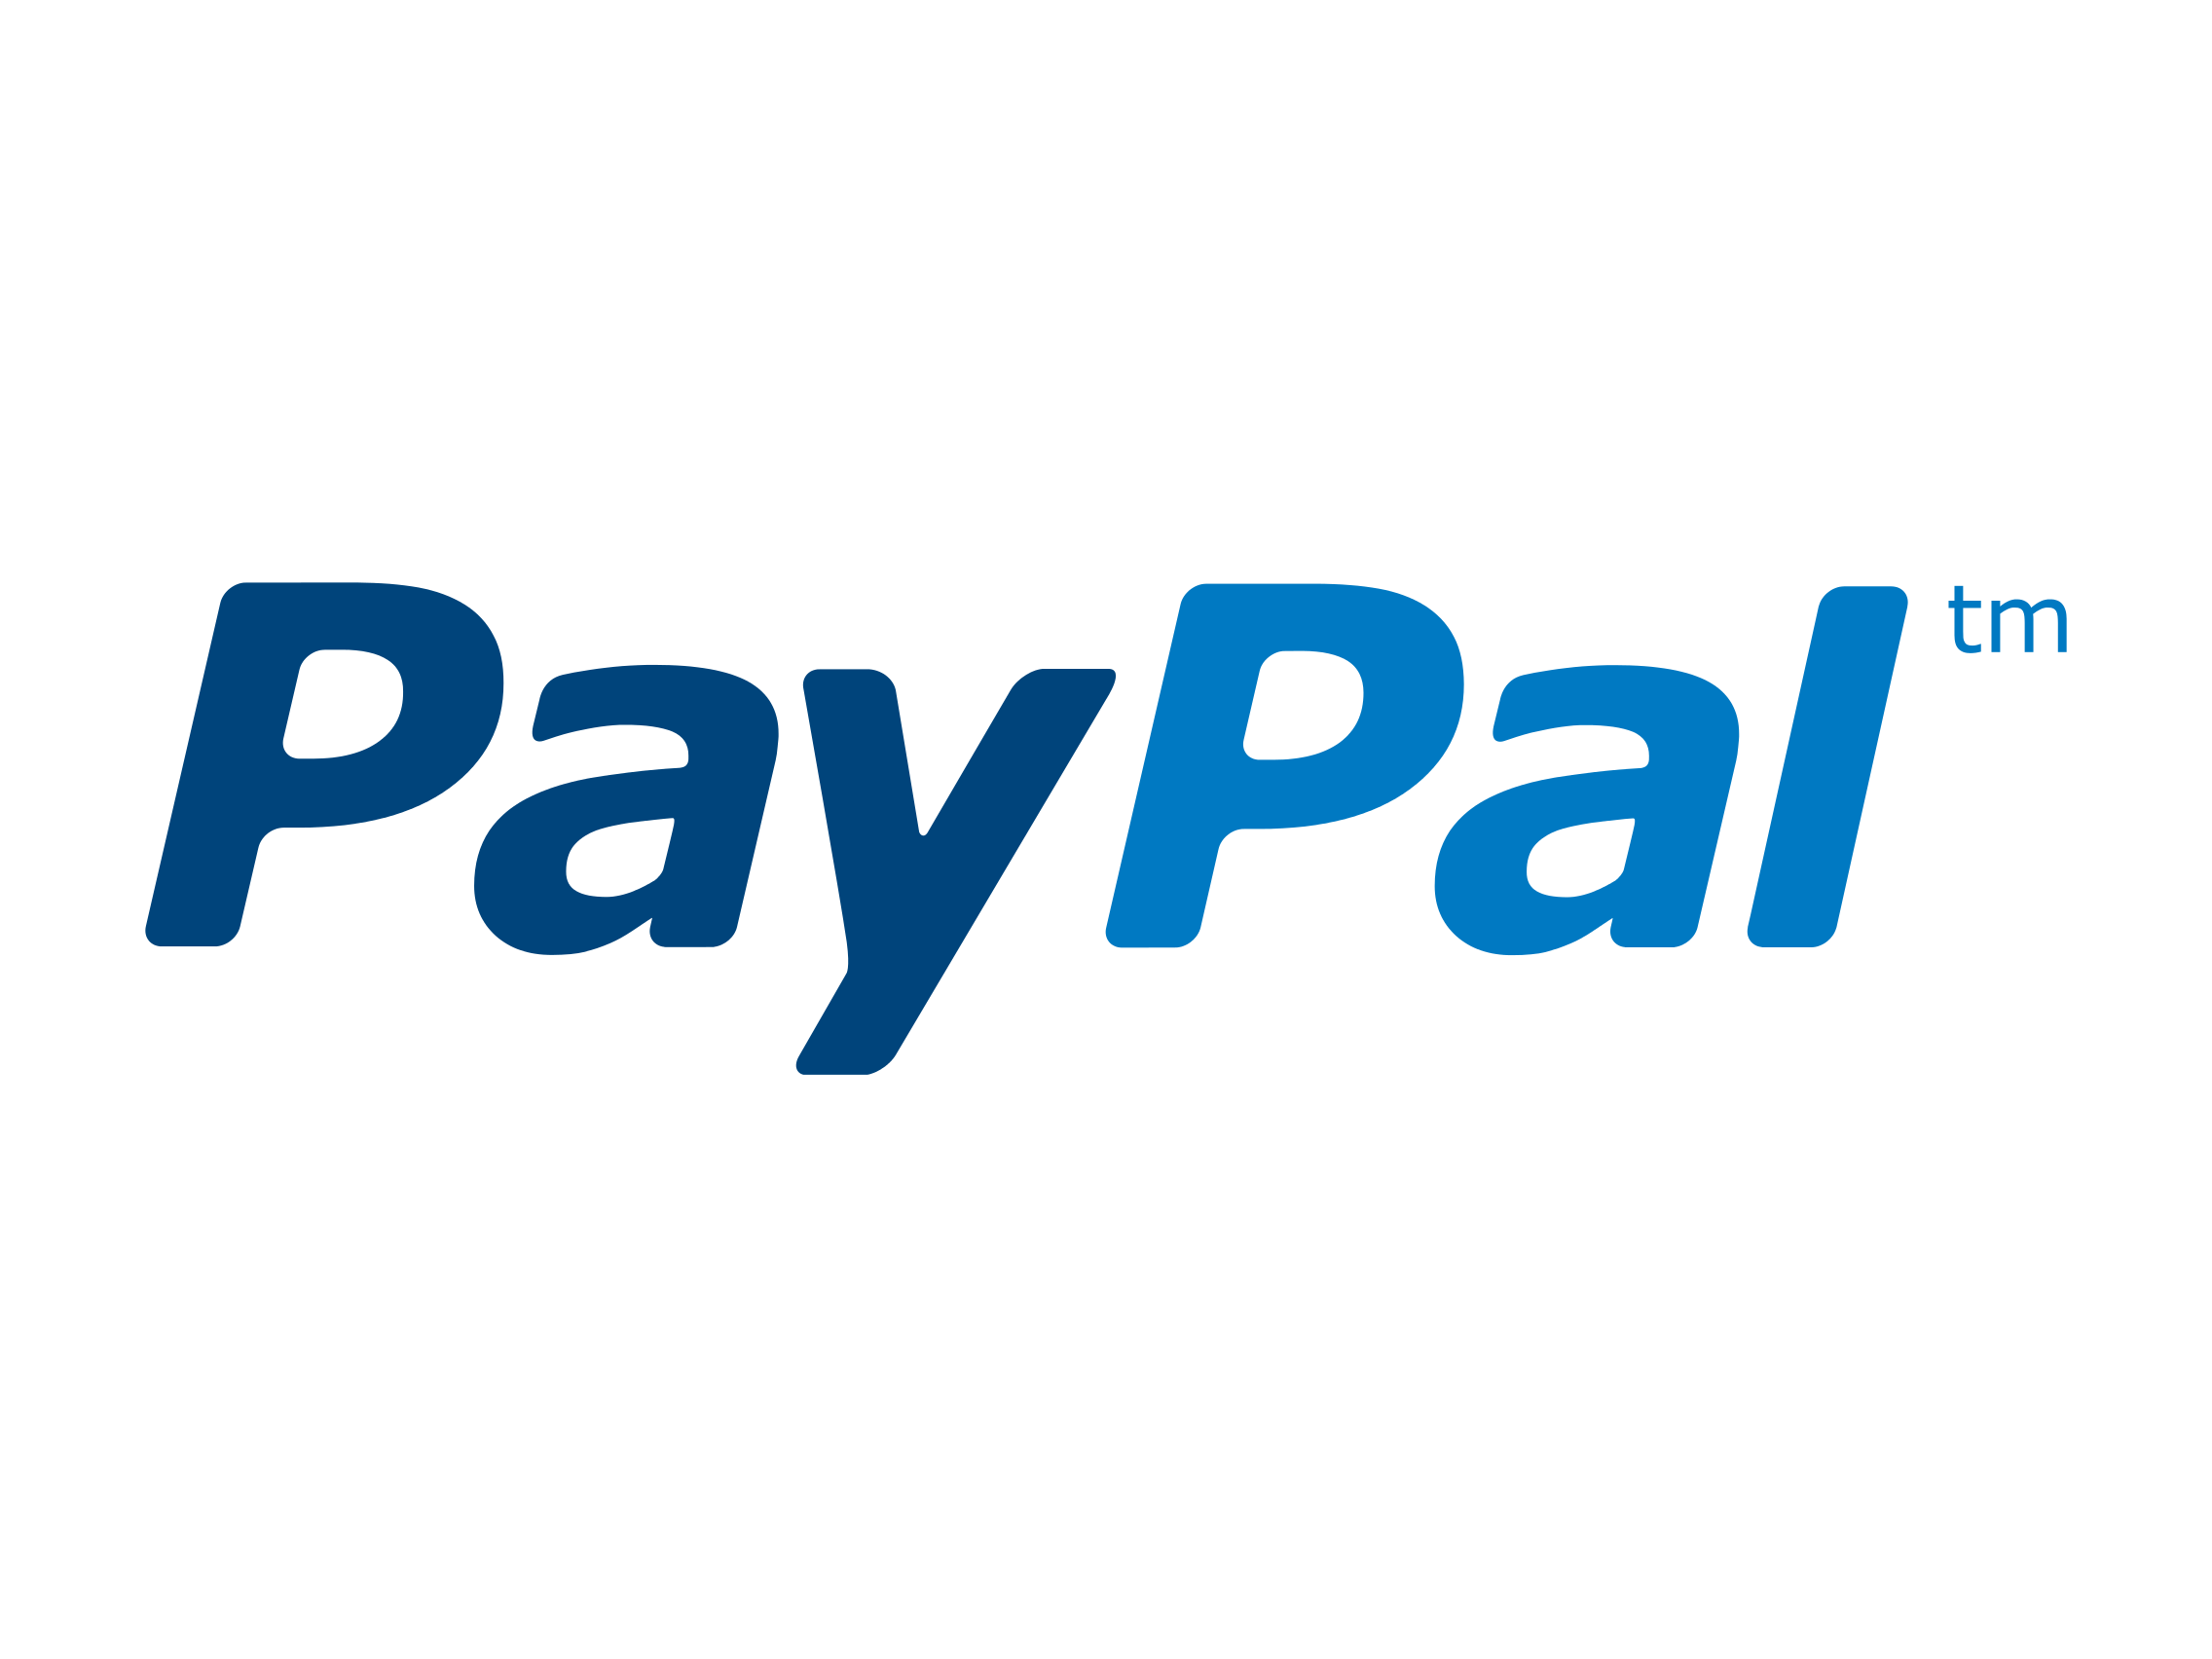 Ssl certificate required to take paypal payments web design hull ssl certificate required to take paypal payments web design hull th3 design design marketing agency hull yorkshire 1betcityfo Image collections